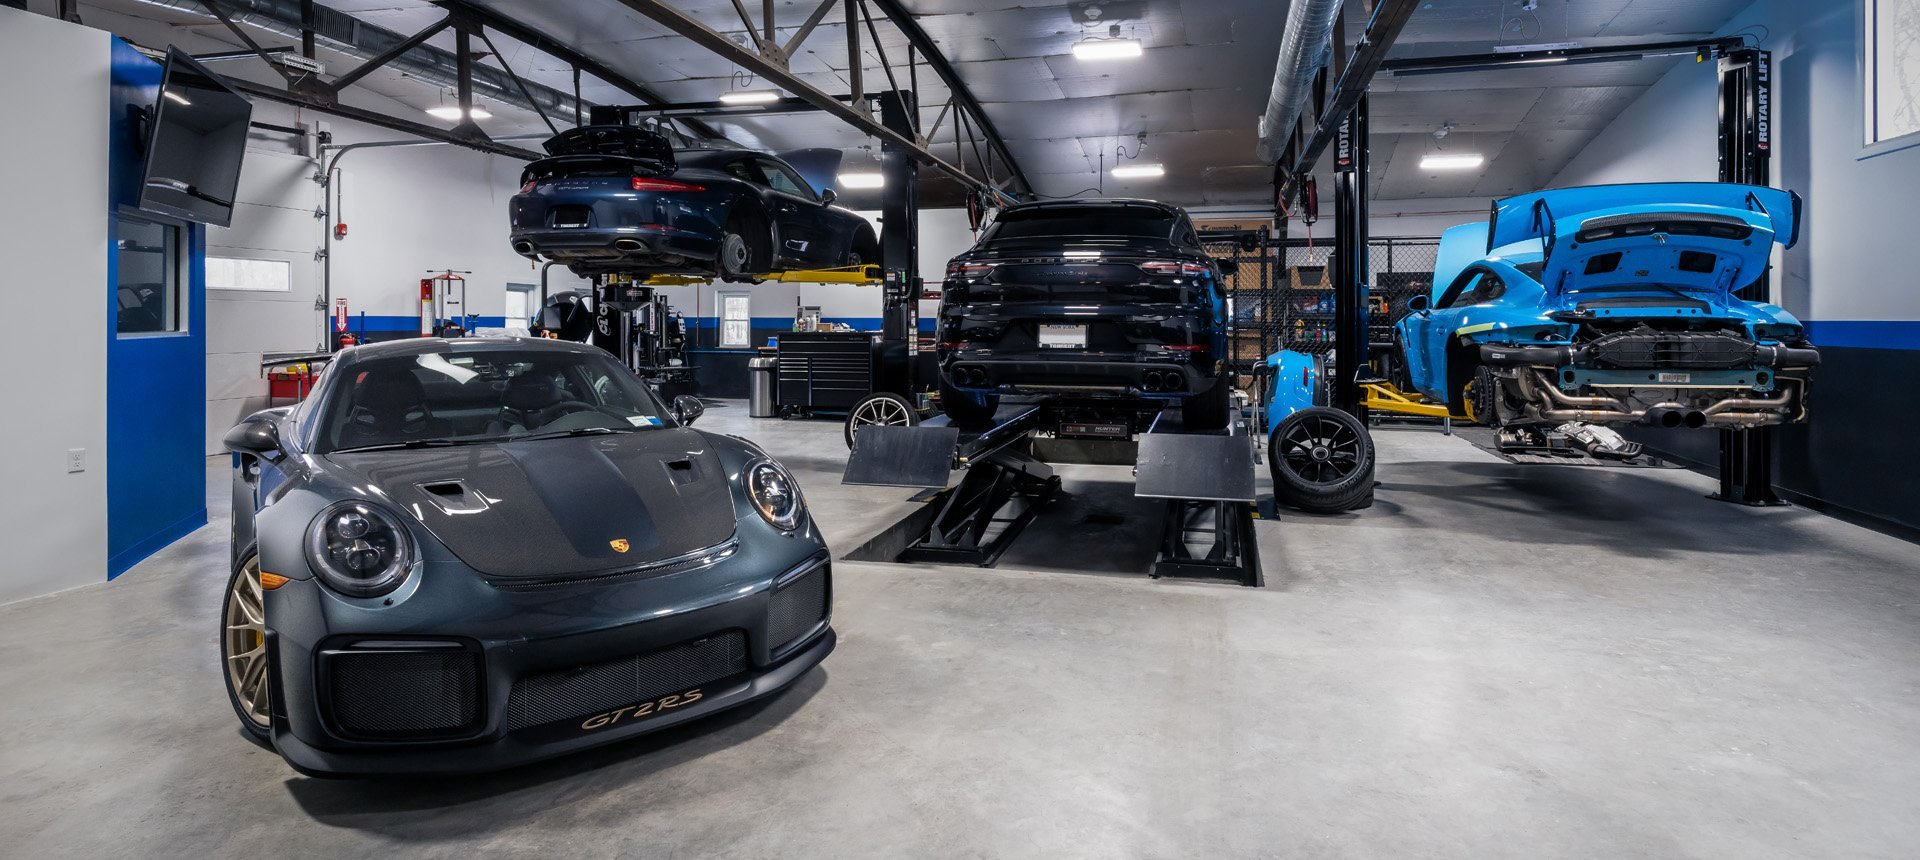 Torrent Motorworks Porsche performance in Nyack, New York Rockland County